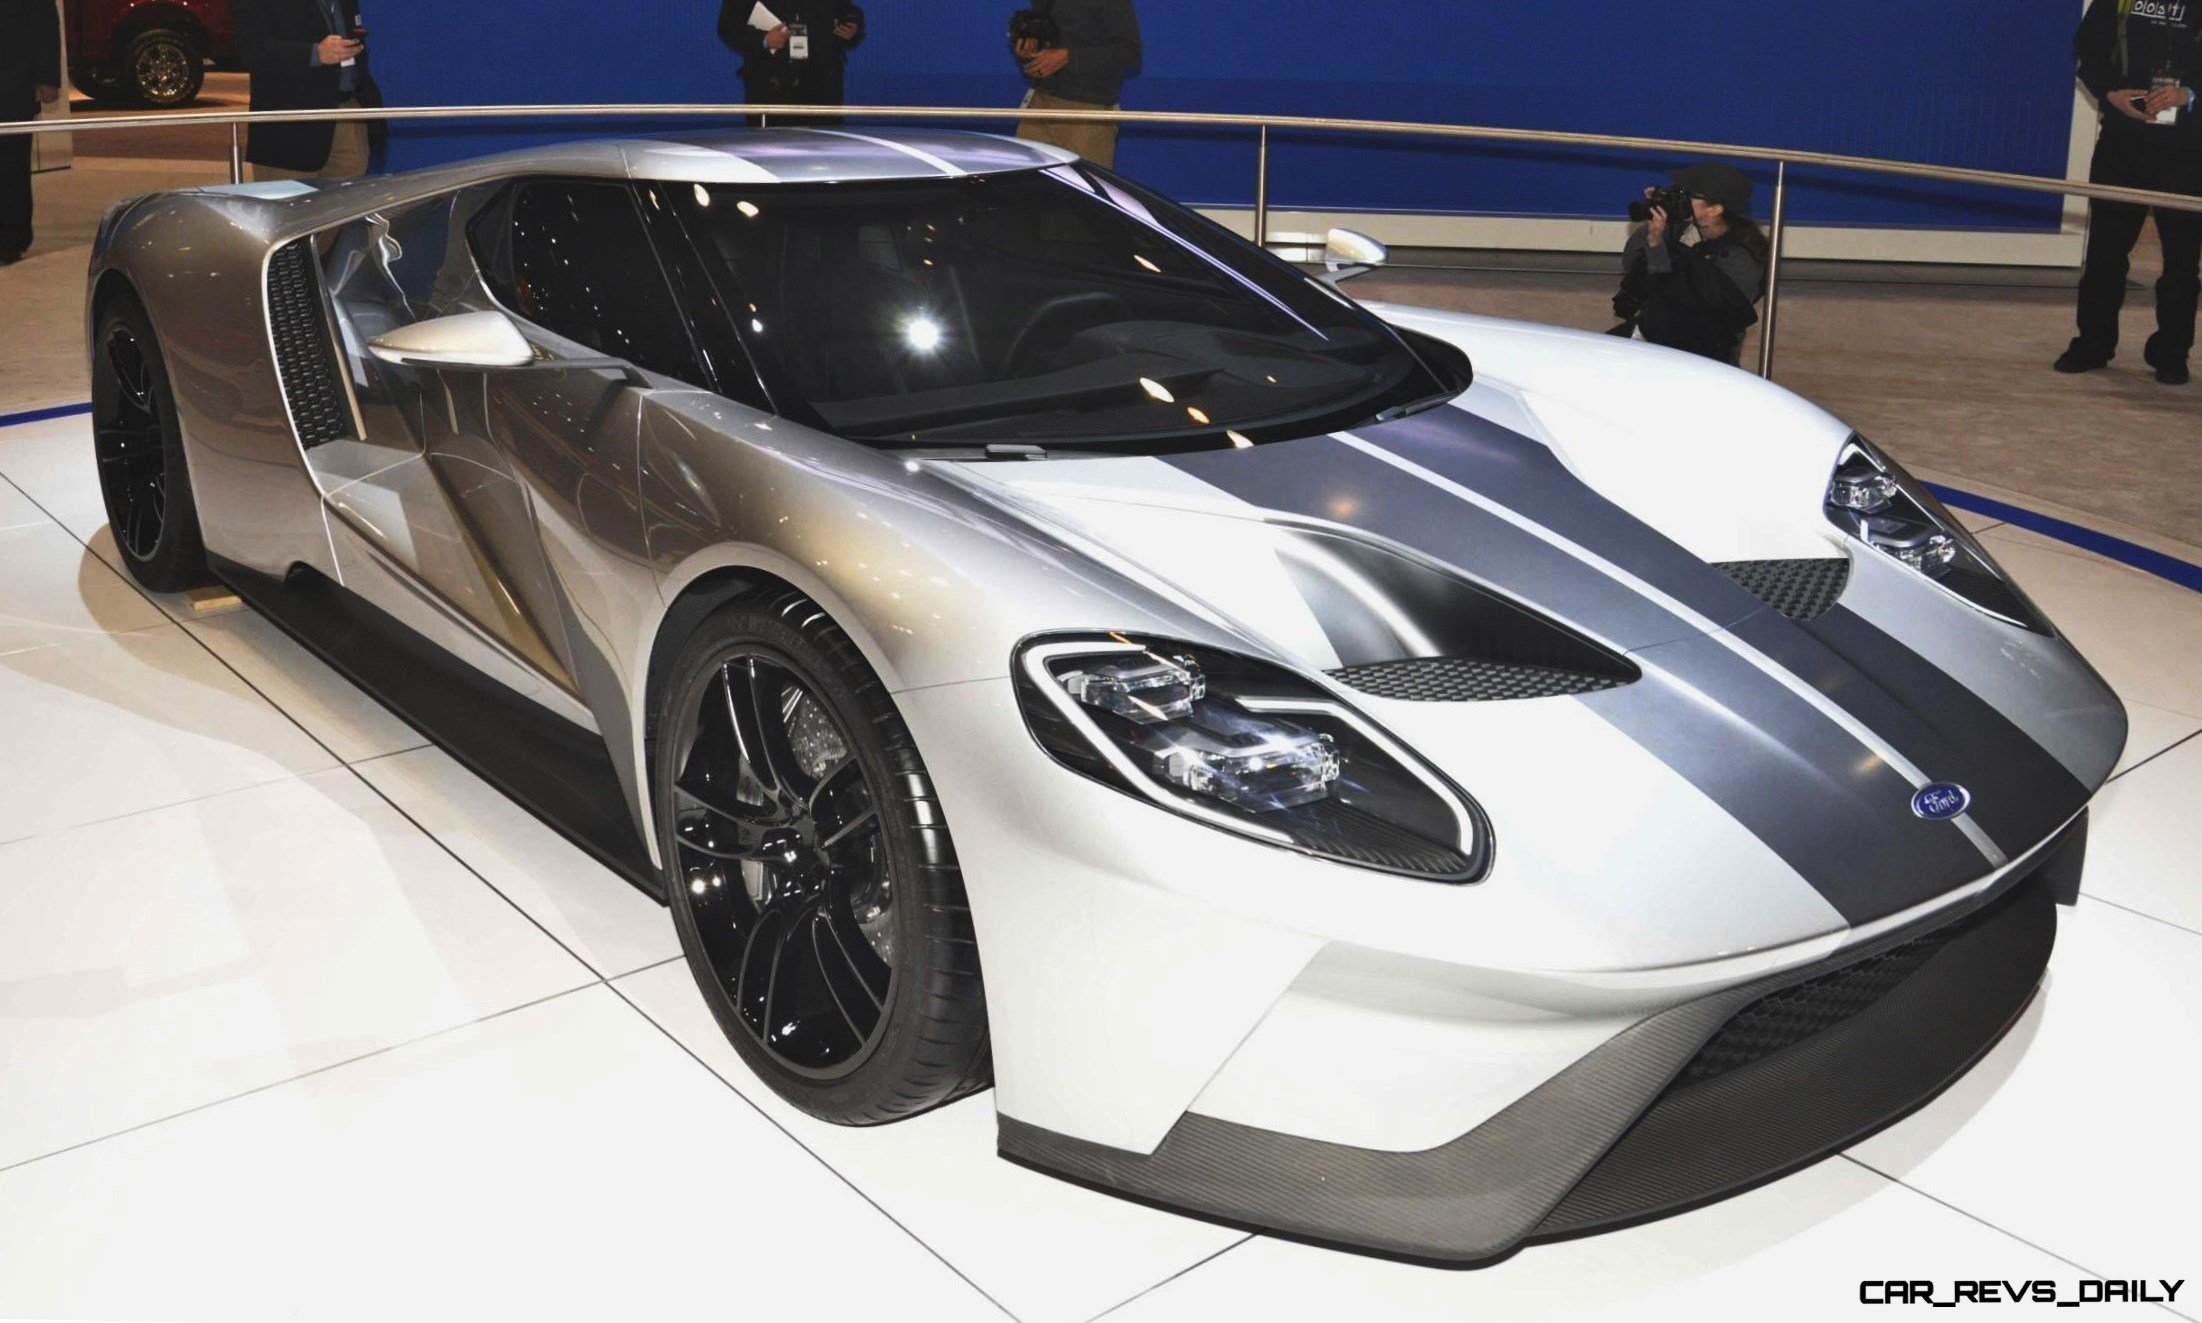 2020 Ford Gt Silver | 200+ Interior and Exterior Images